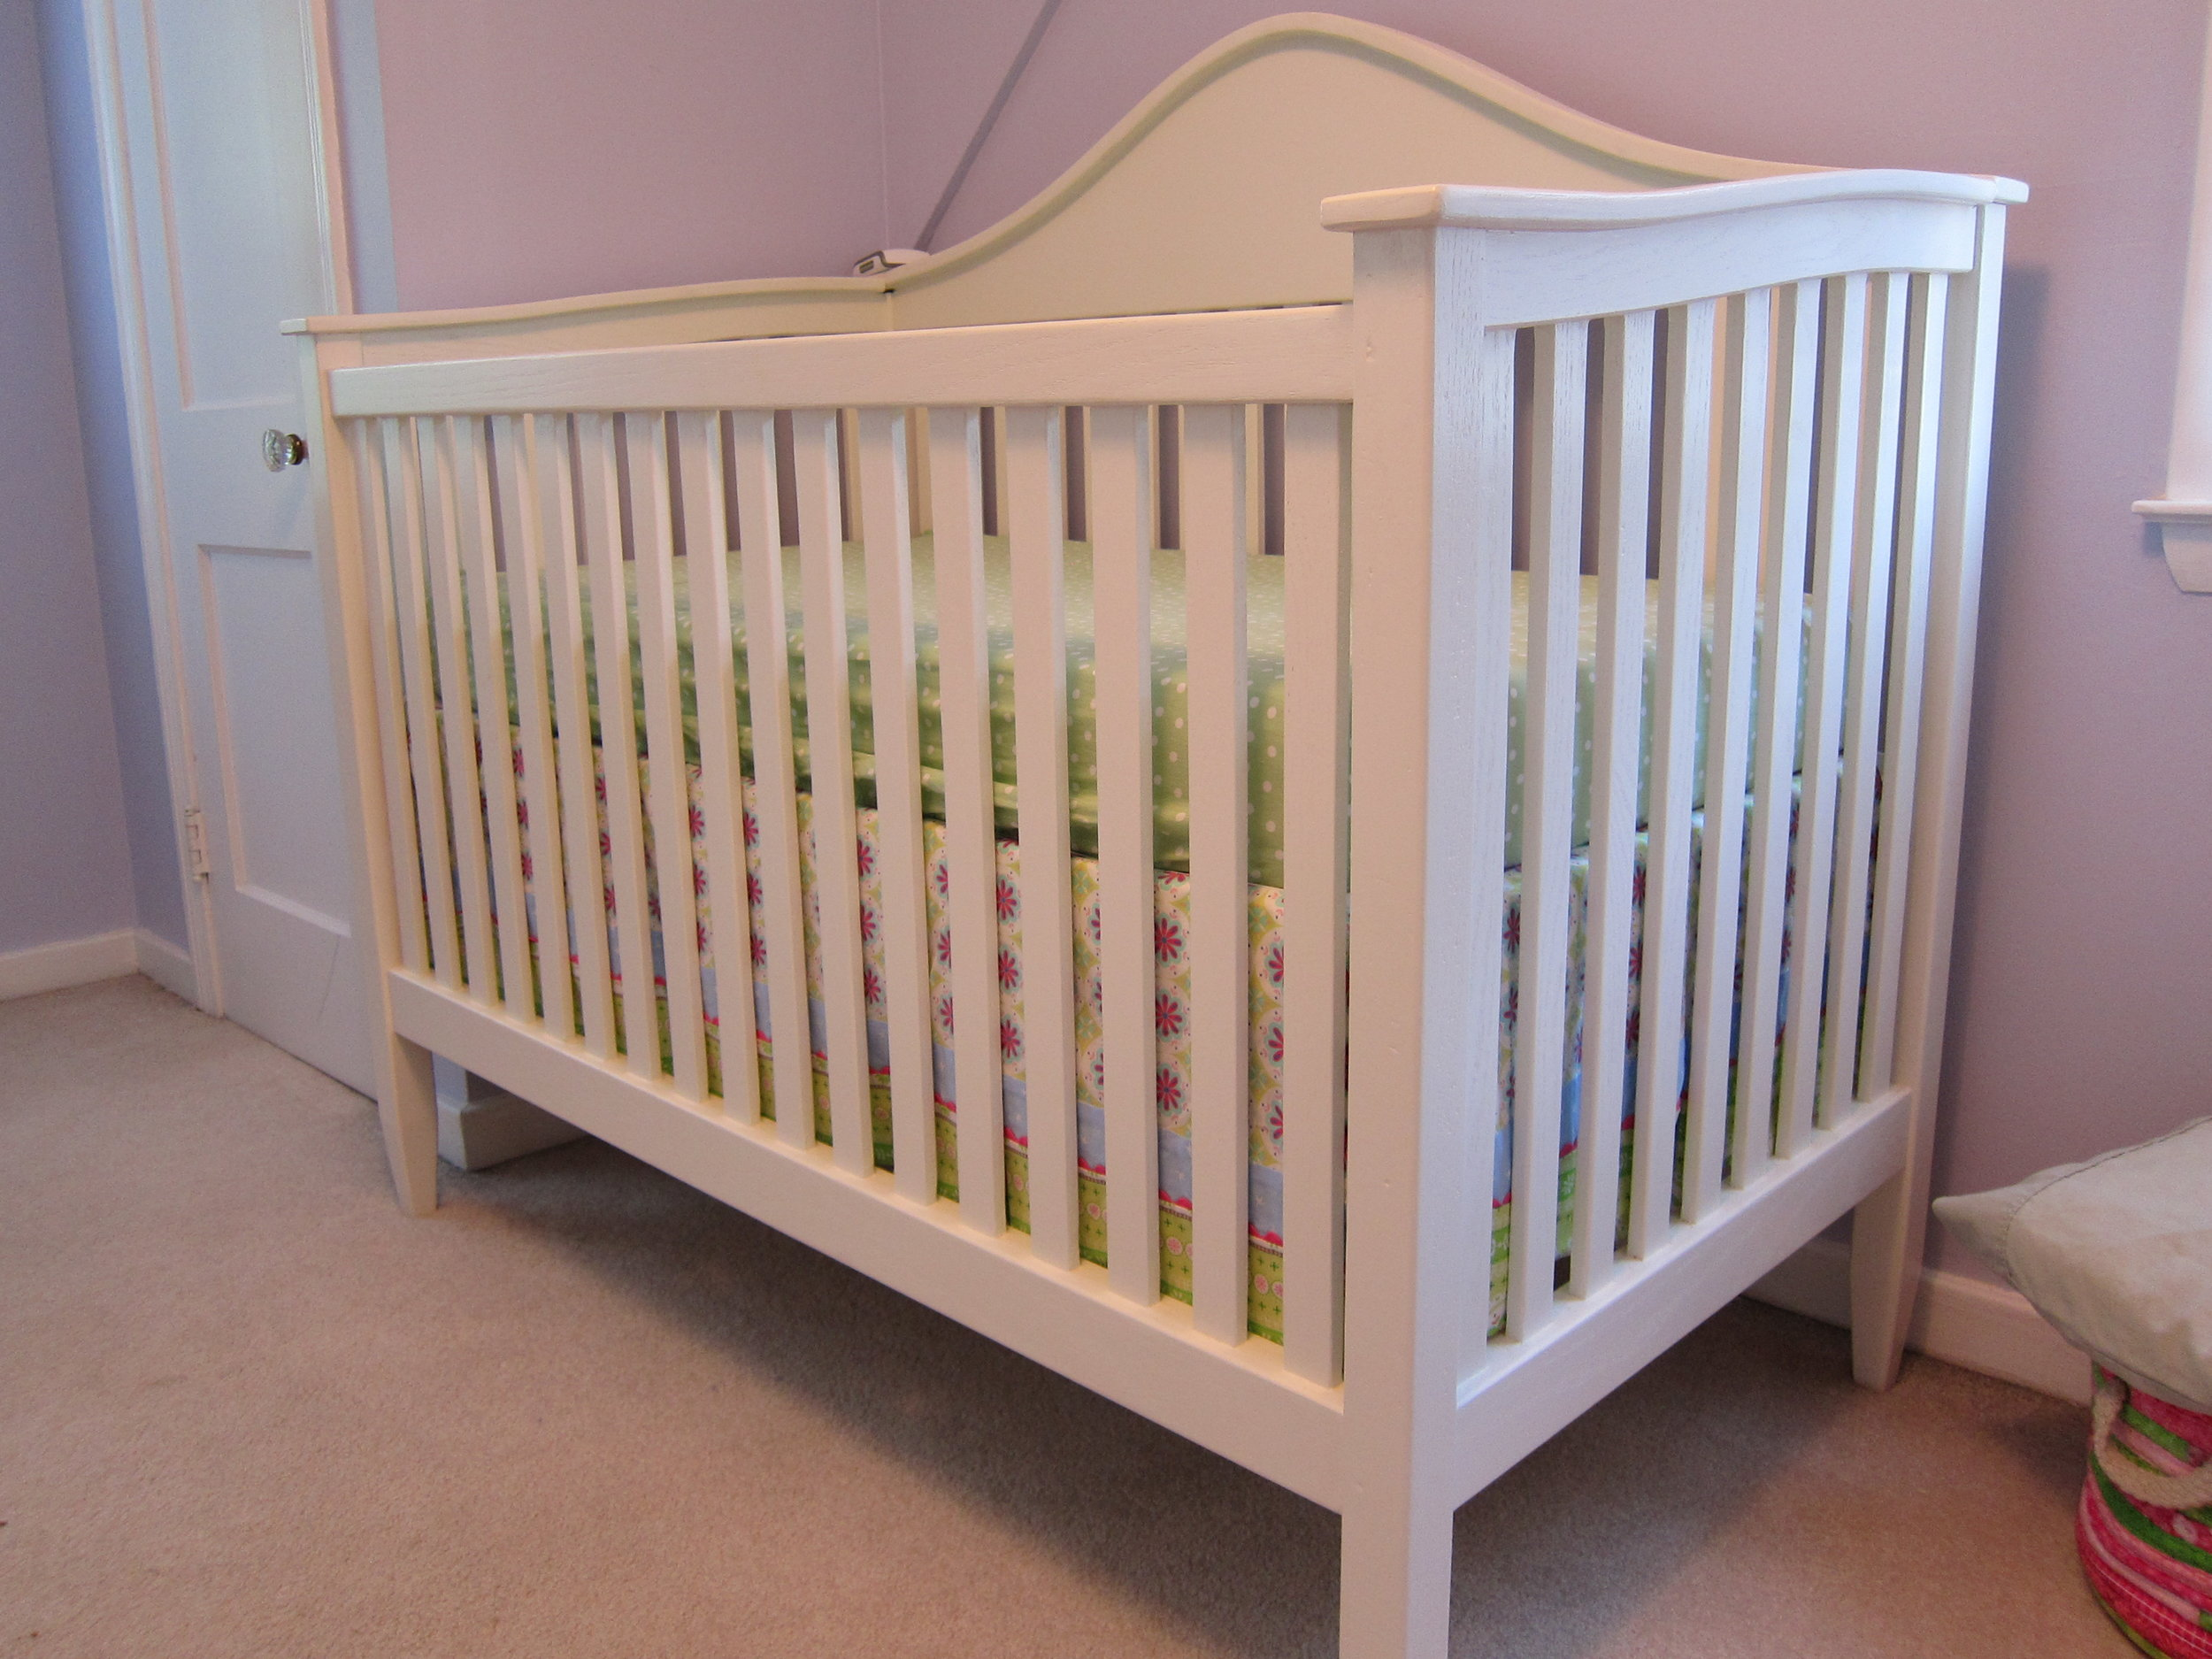 Closer shot of the finished crib. Since she grew out of it, it's been used by her two younger siblings.